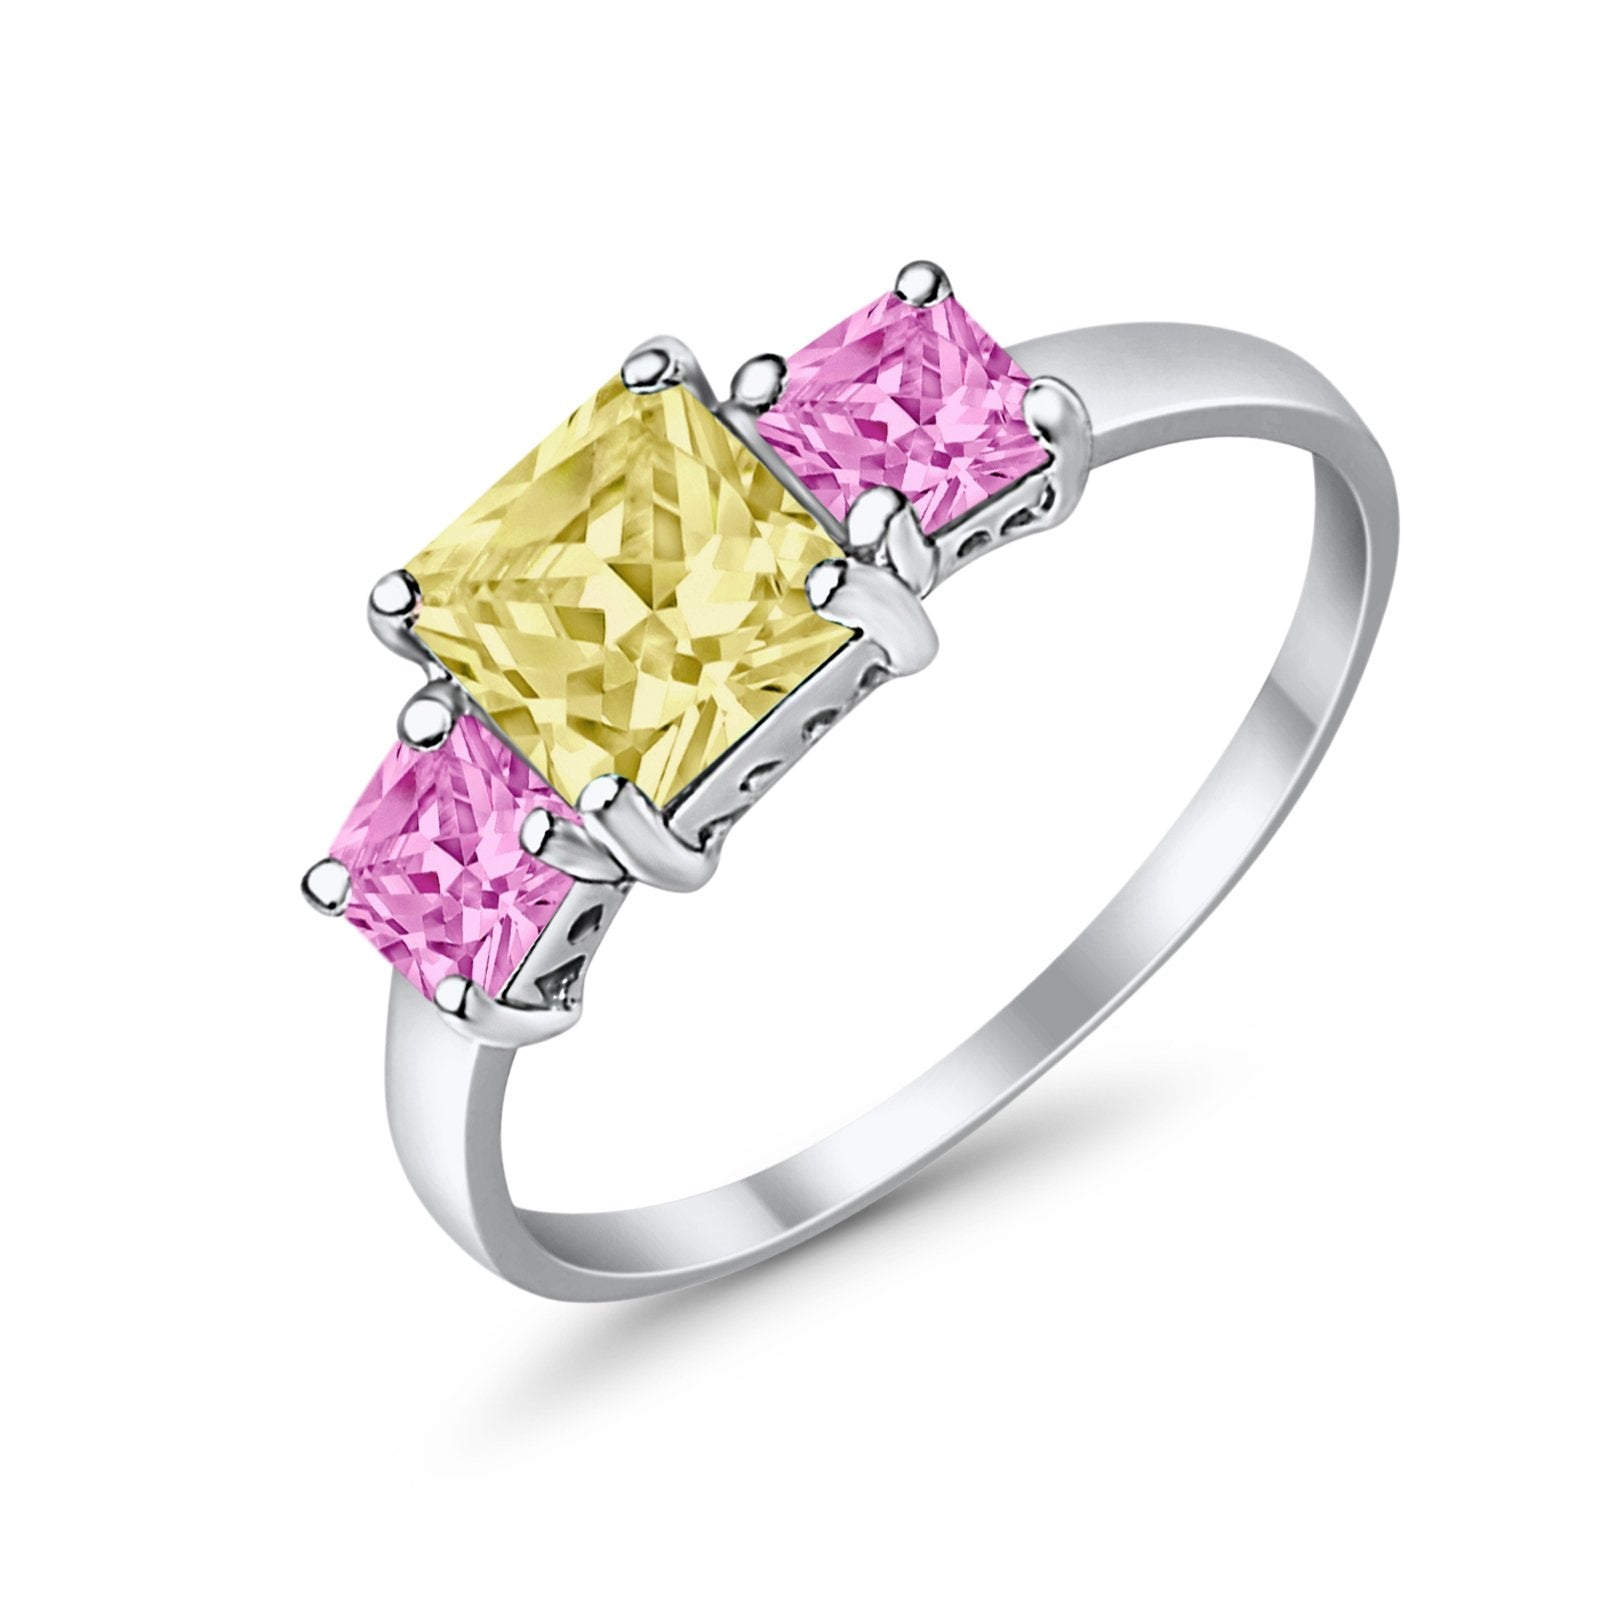 3 Stone Fashion Ring Princess Cut Simulated Cubic Zirconia 925 Sterling Silver